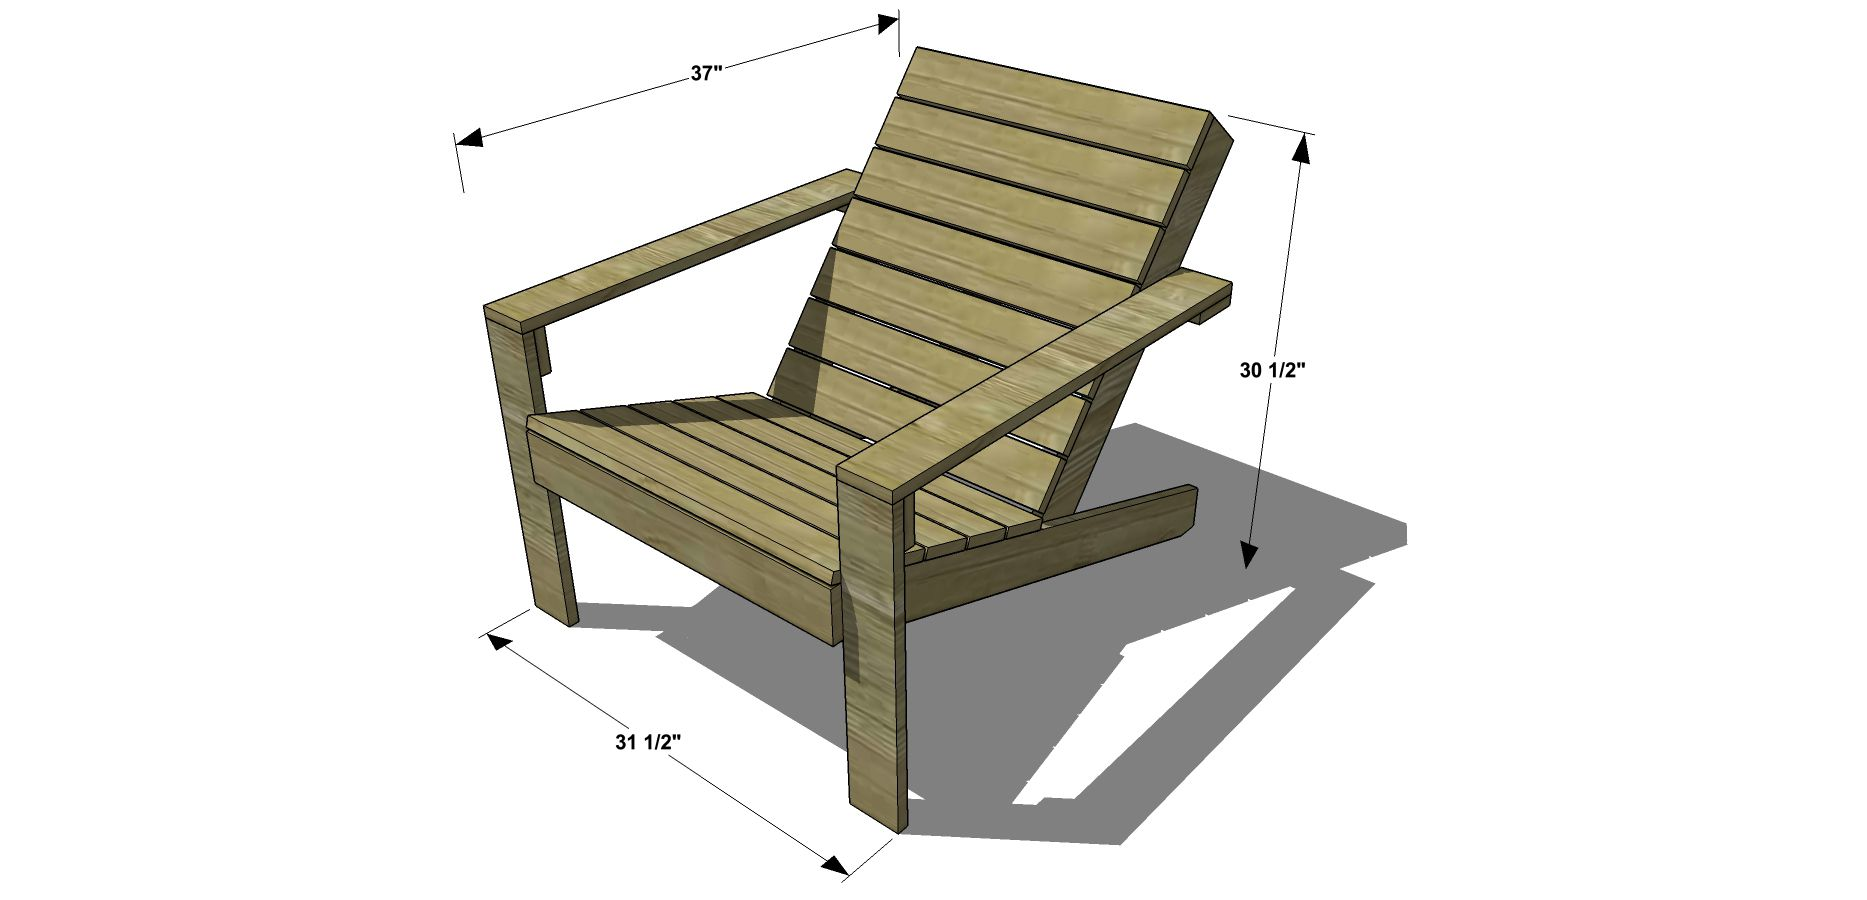 Outdoor furniture plans - Dimensions For Free Diy Furniture Plans How To Build An Outdoor Modern Adirondack Chair